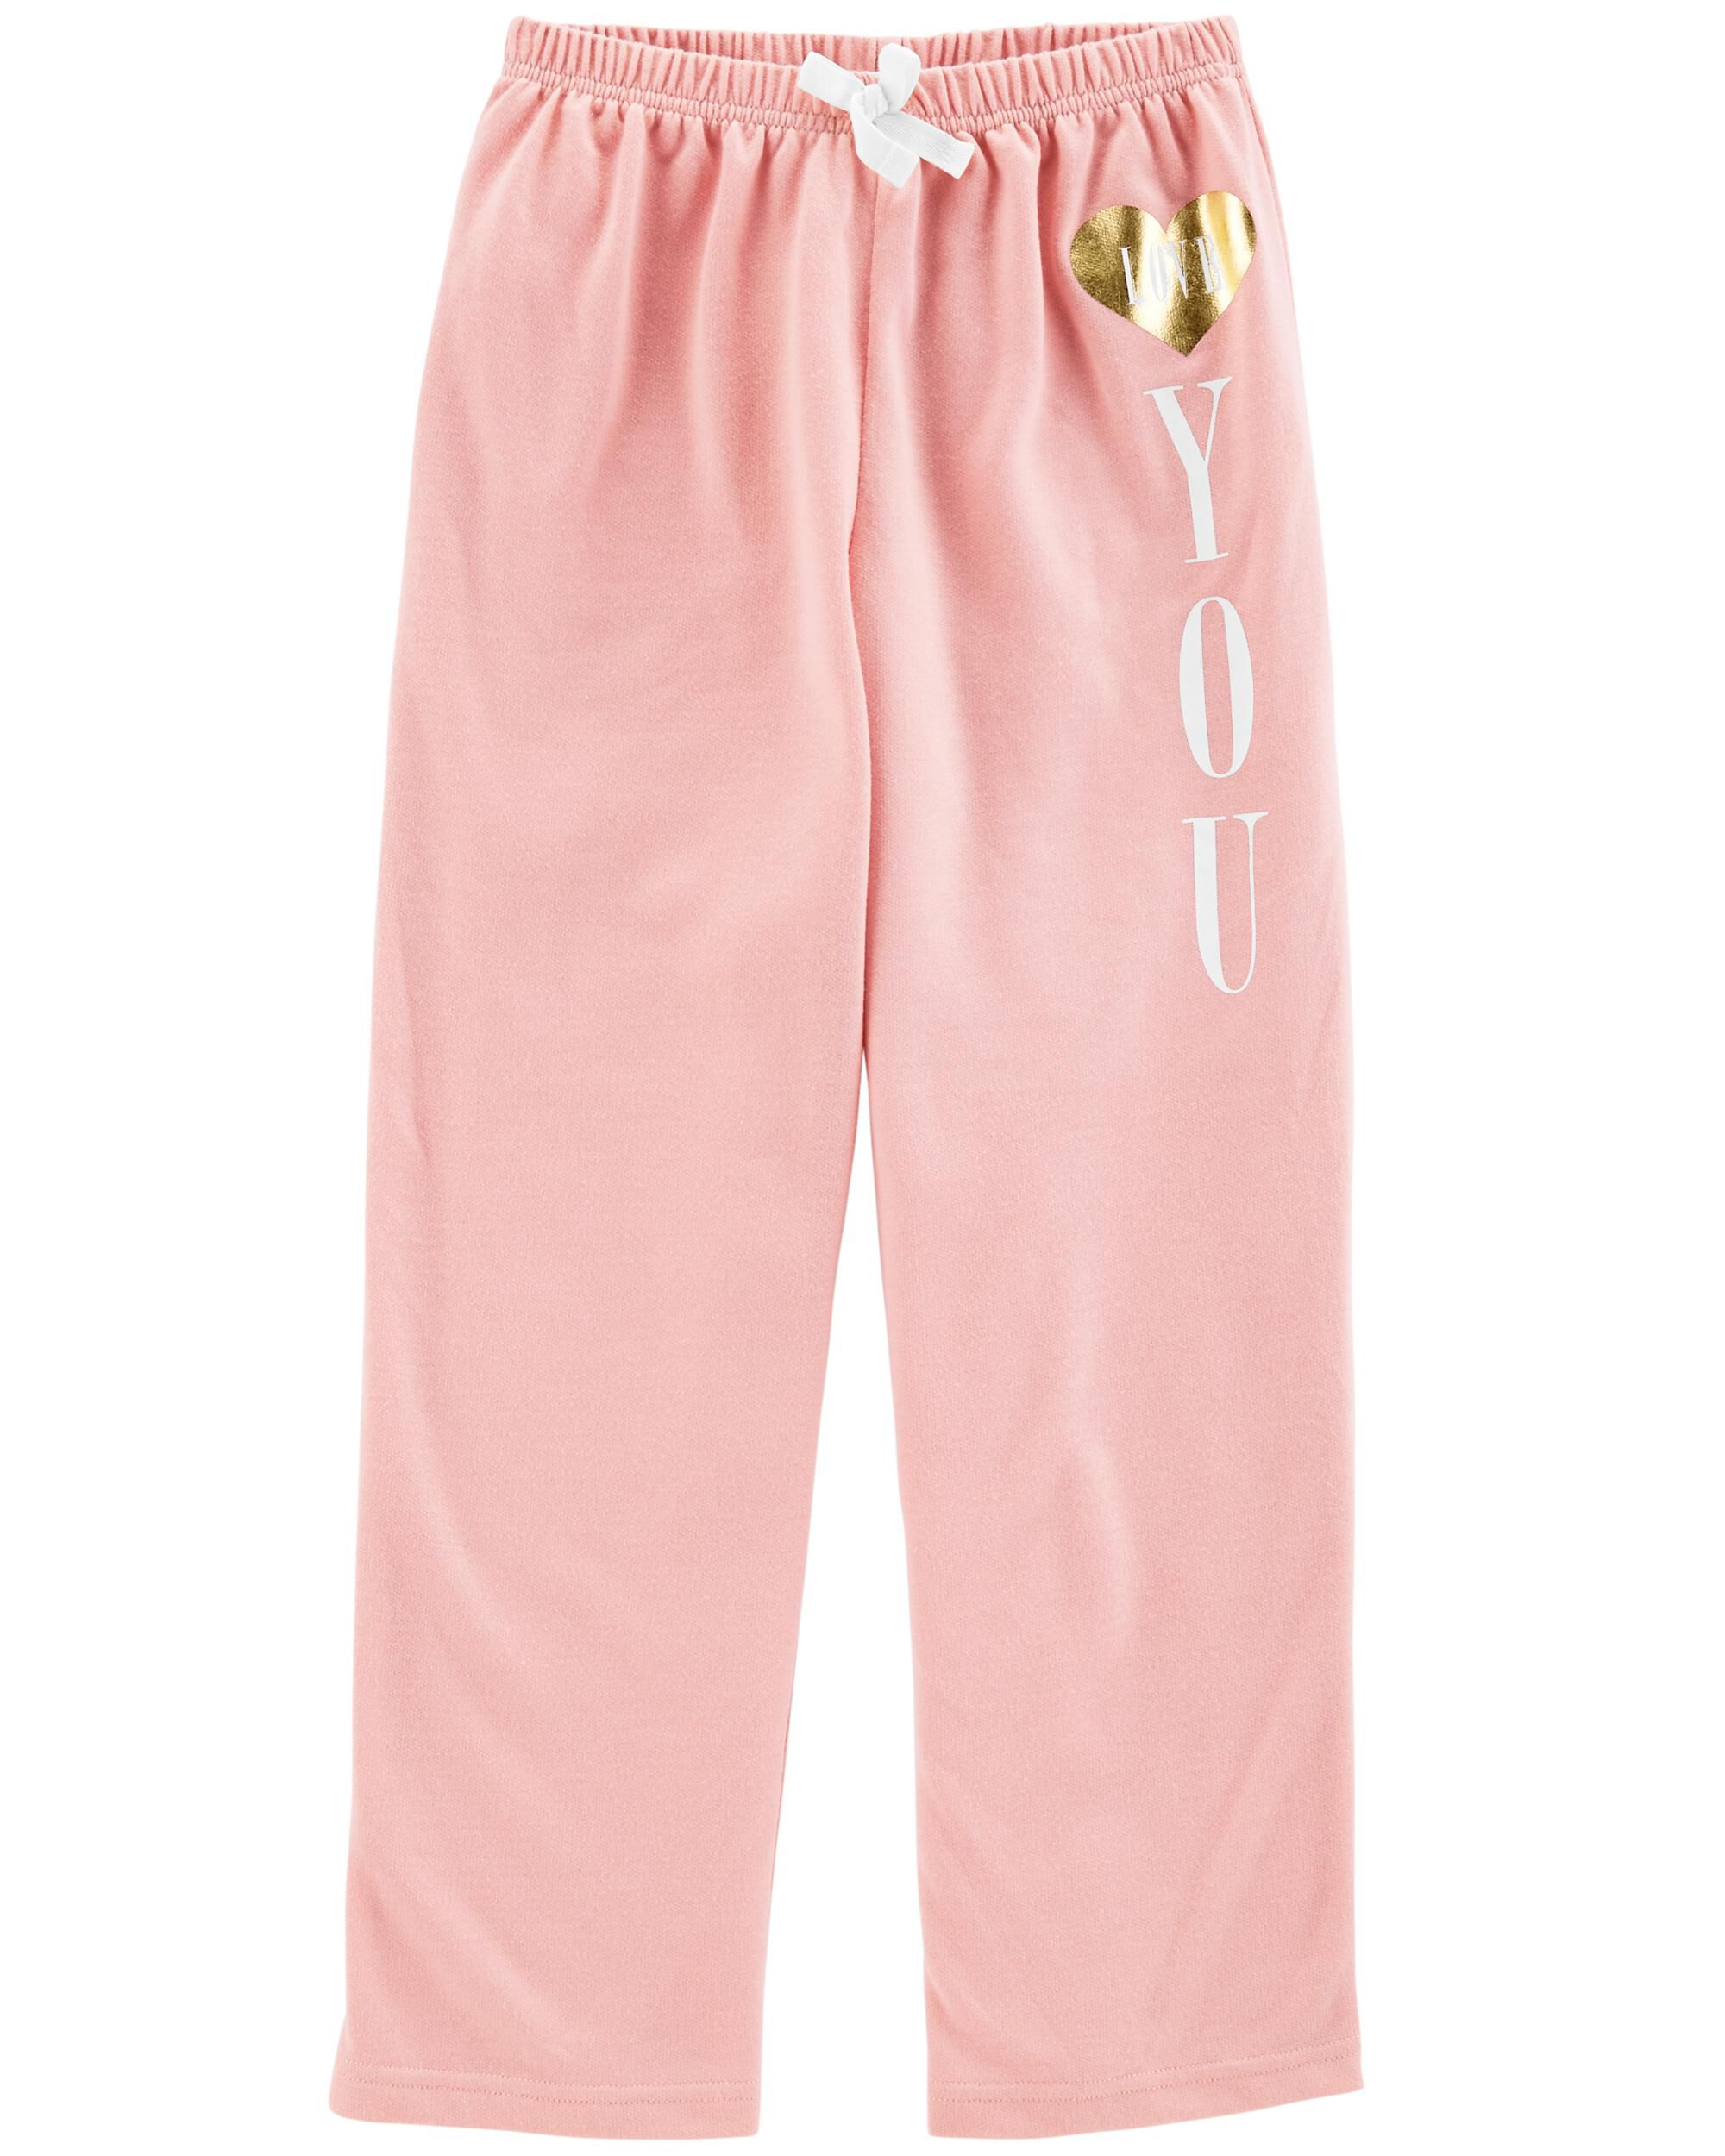 *Clearance*  Love You French Terry Sleep Pants